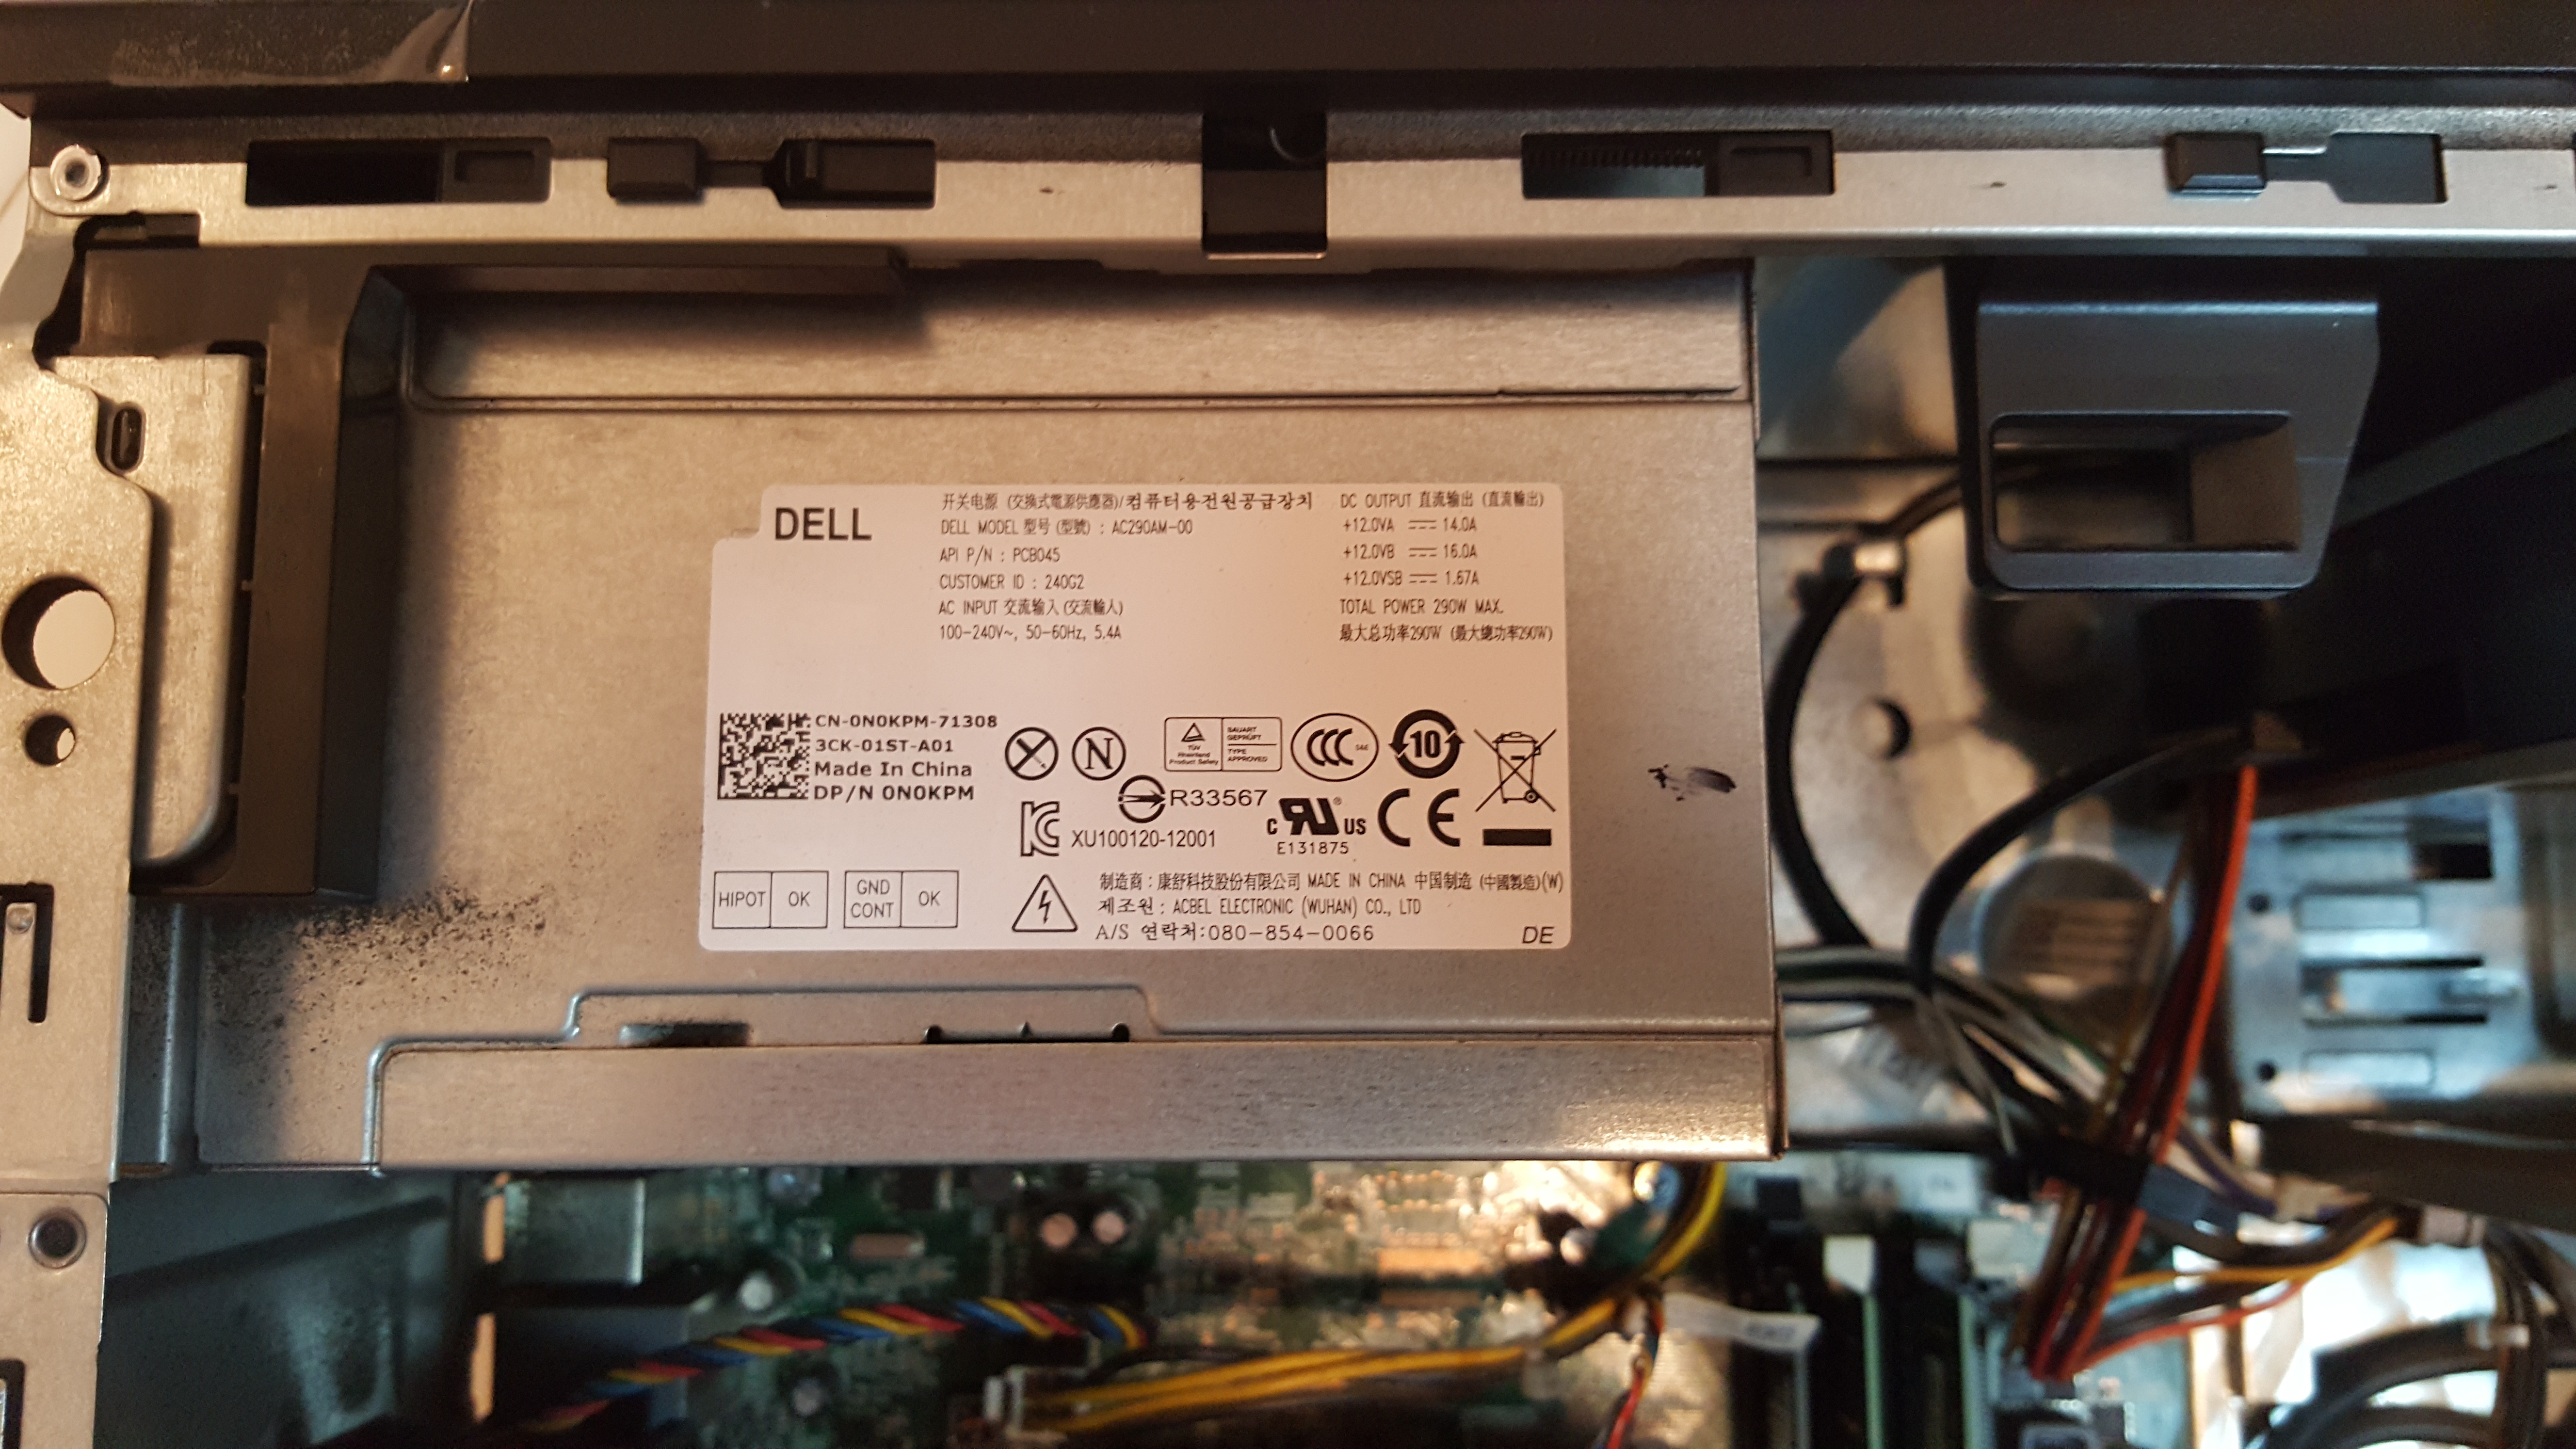 Upgrading Dell Optiplex 9020 PSU - Cases and Power Supplies